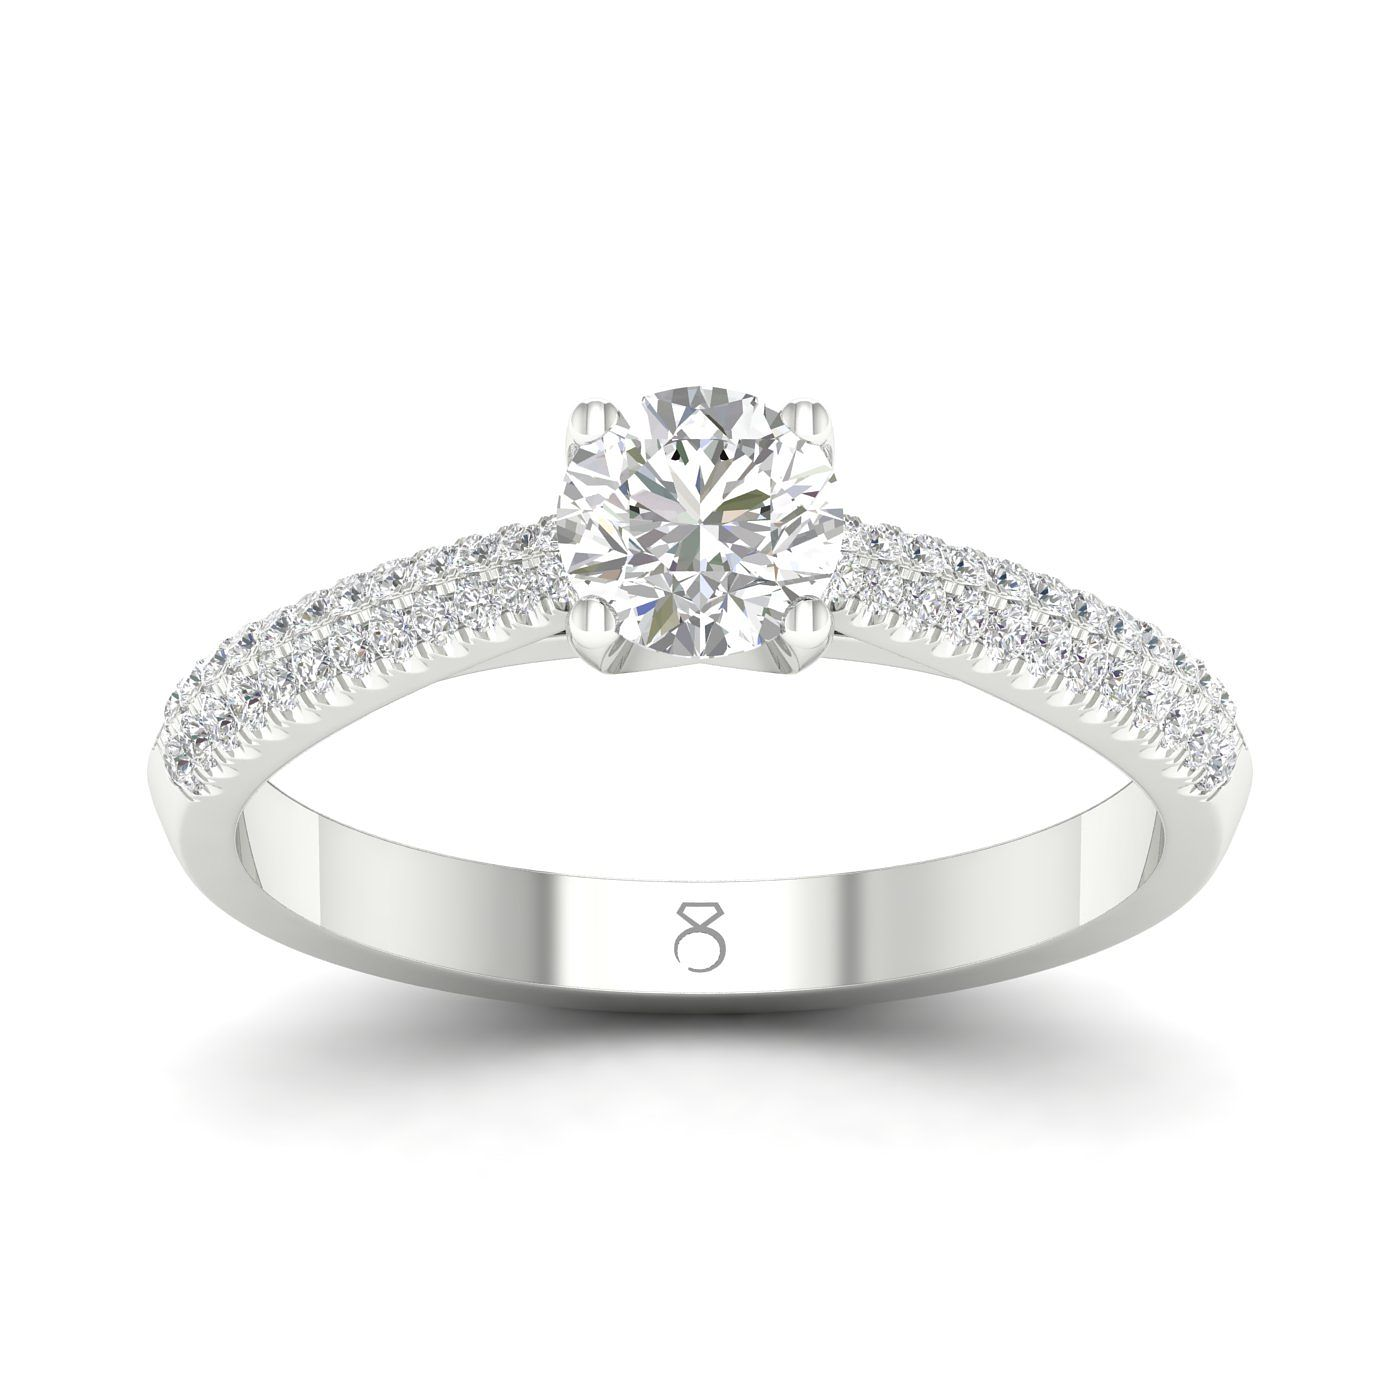 The Diamond Story 18ct White Gold 0.50ct Total Diamond Ring - Product number 4173651